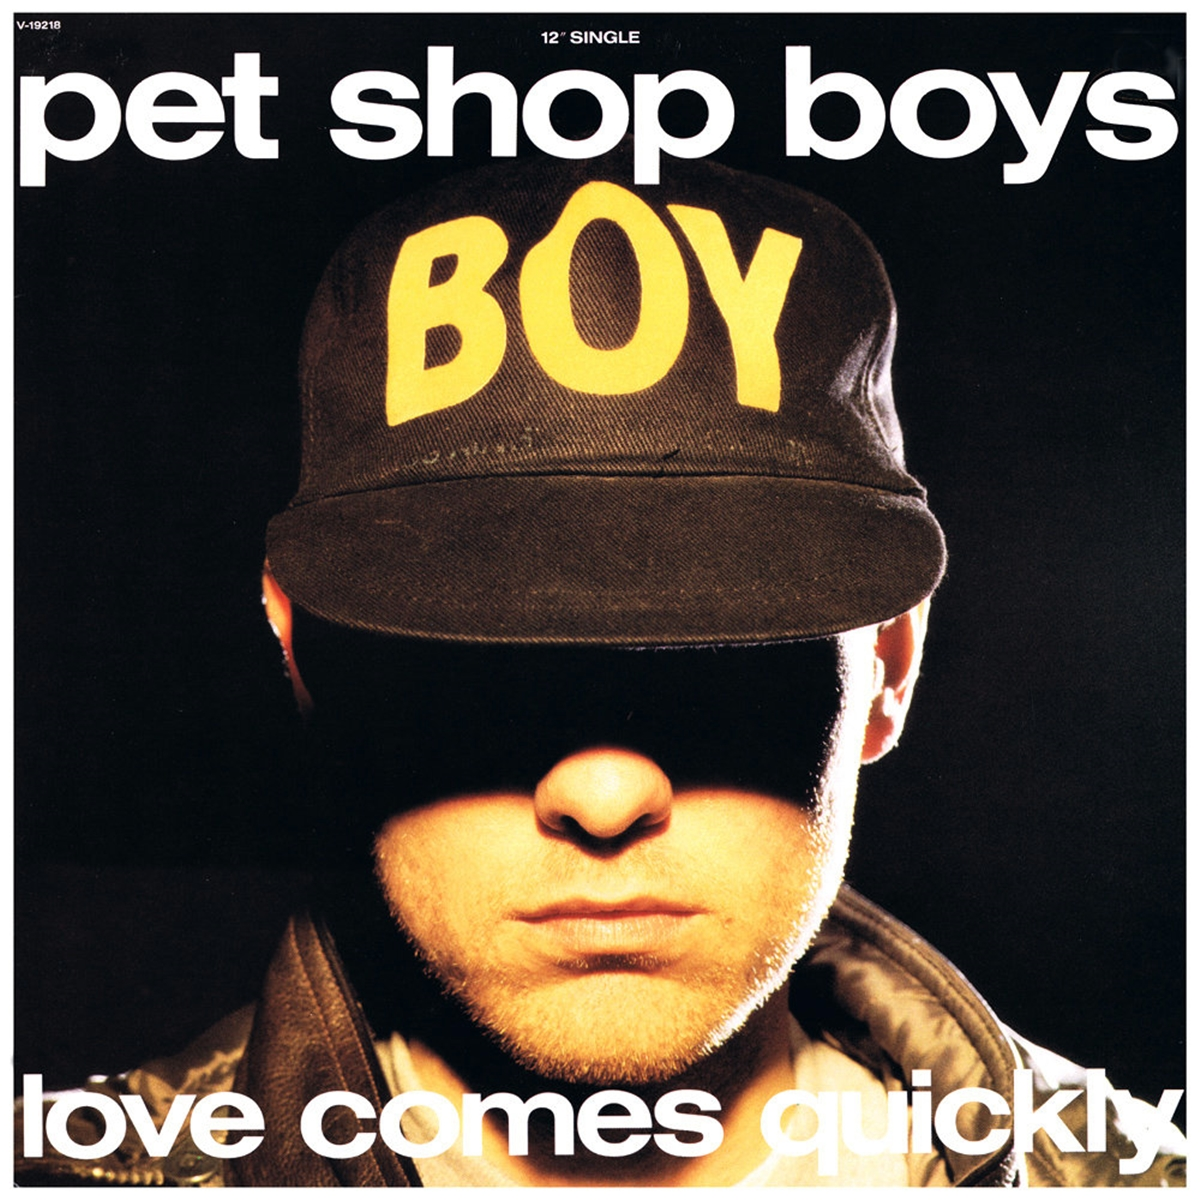 9 24 20 Things You May Not Have Realised About The Pet Shop Boys